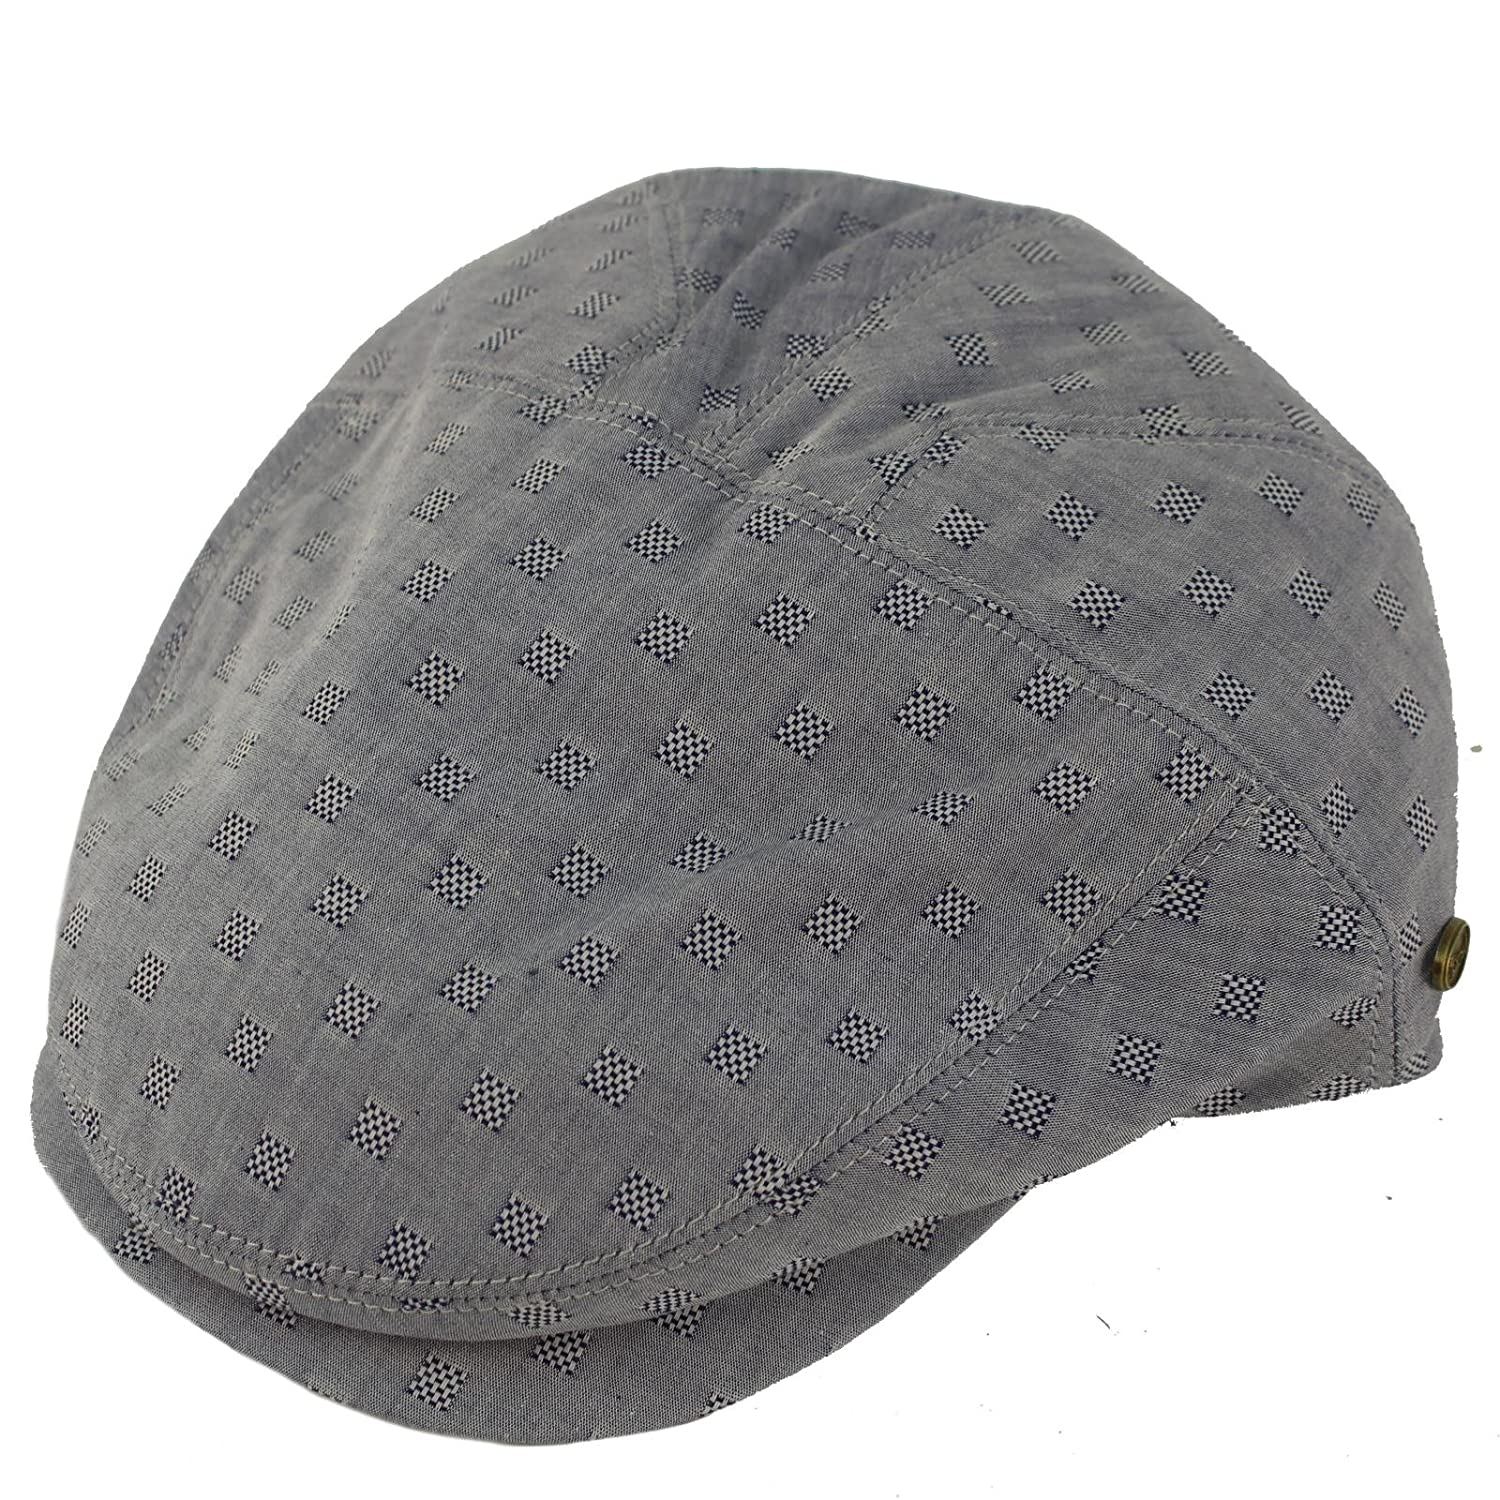 Epoch Men s 100% Cotton 7 Panel Ivy Mixed Pattern Driver Cabby Flat Cap Hat  at Amazon Men s Clothing store  ef32495b6caf